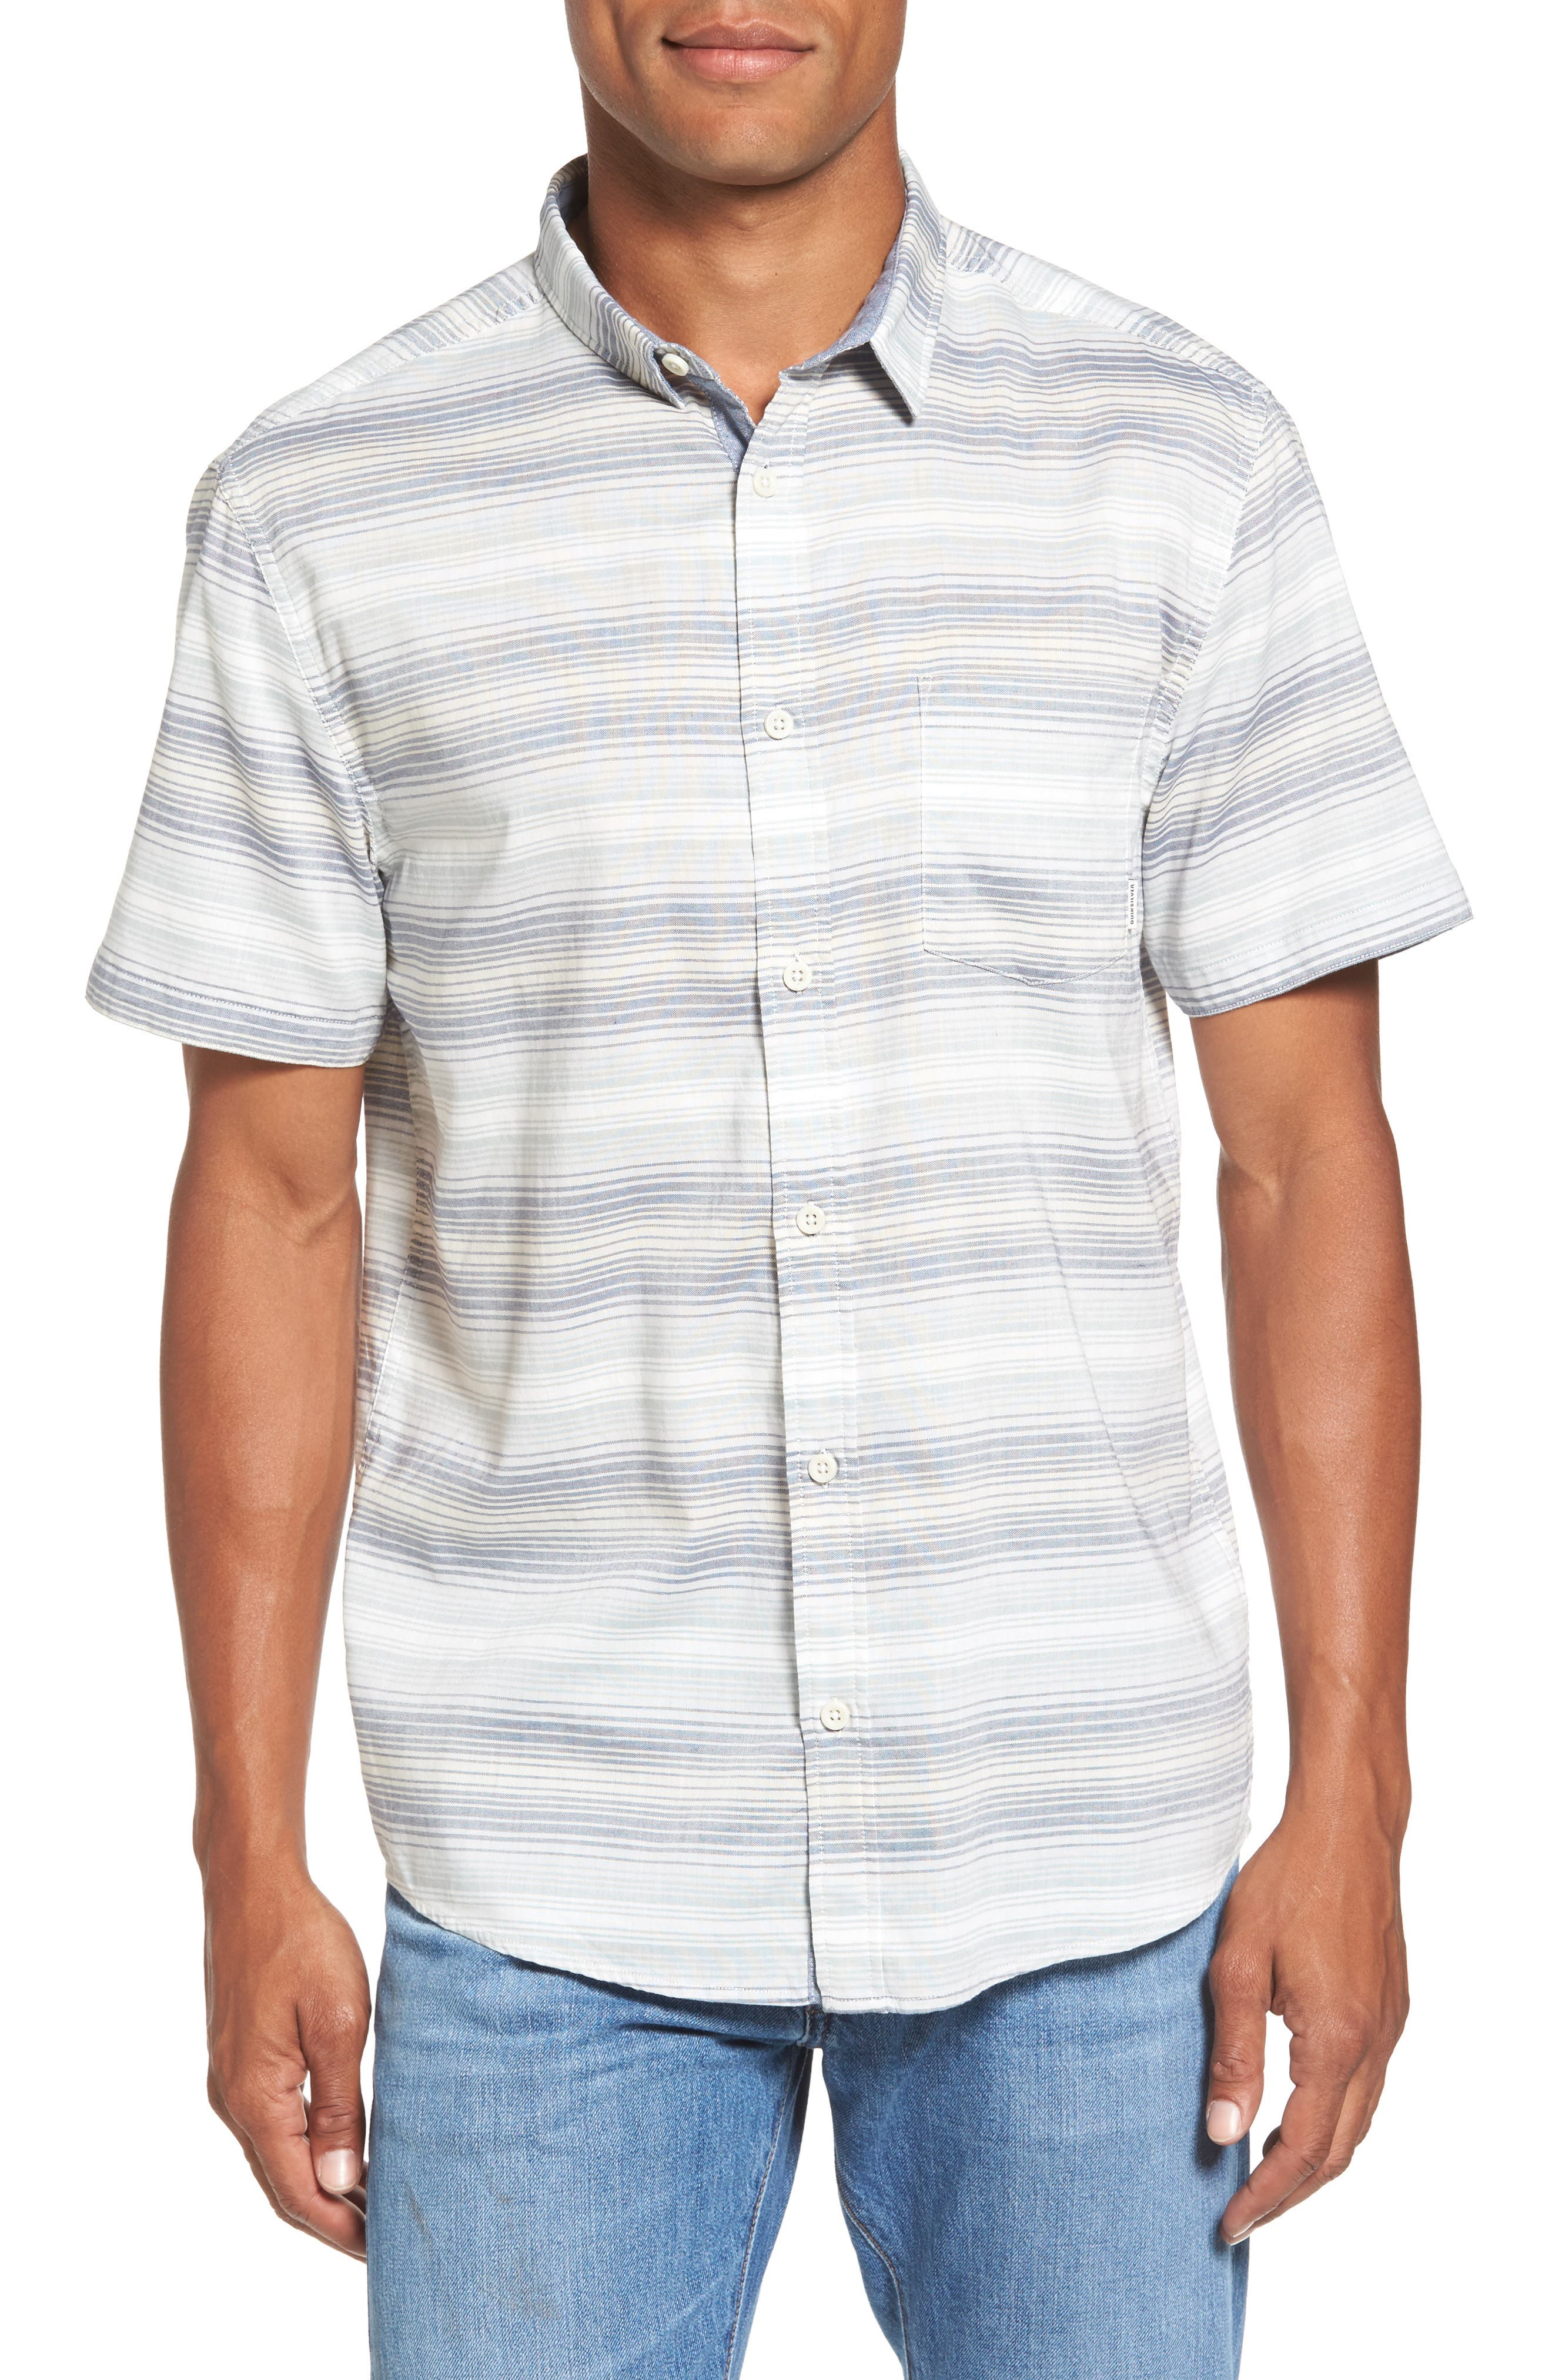 Main Image - Quiksilver Aventail Stripe Shirt